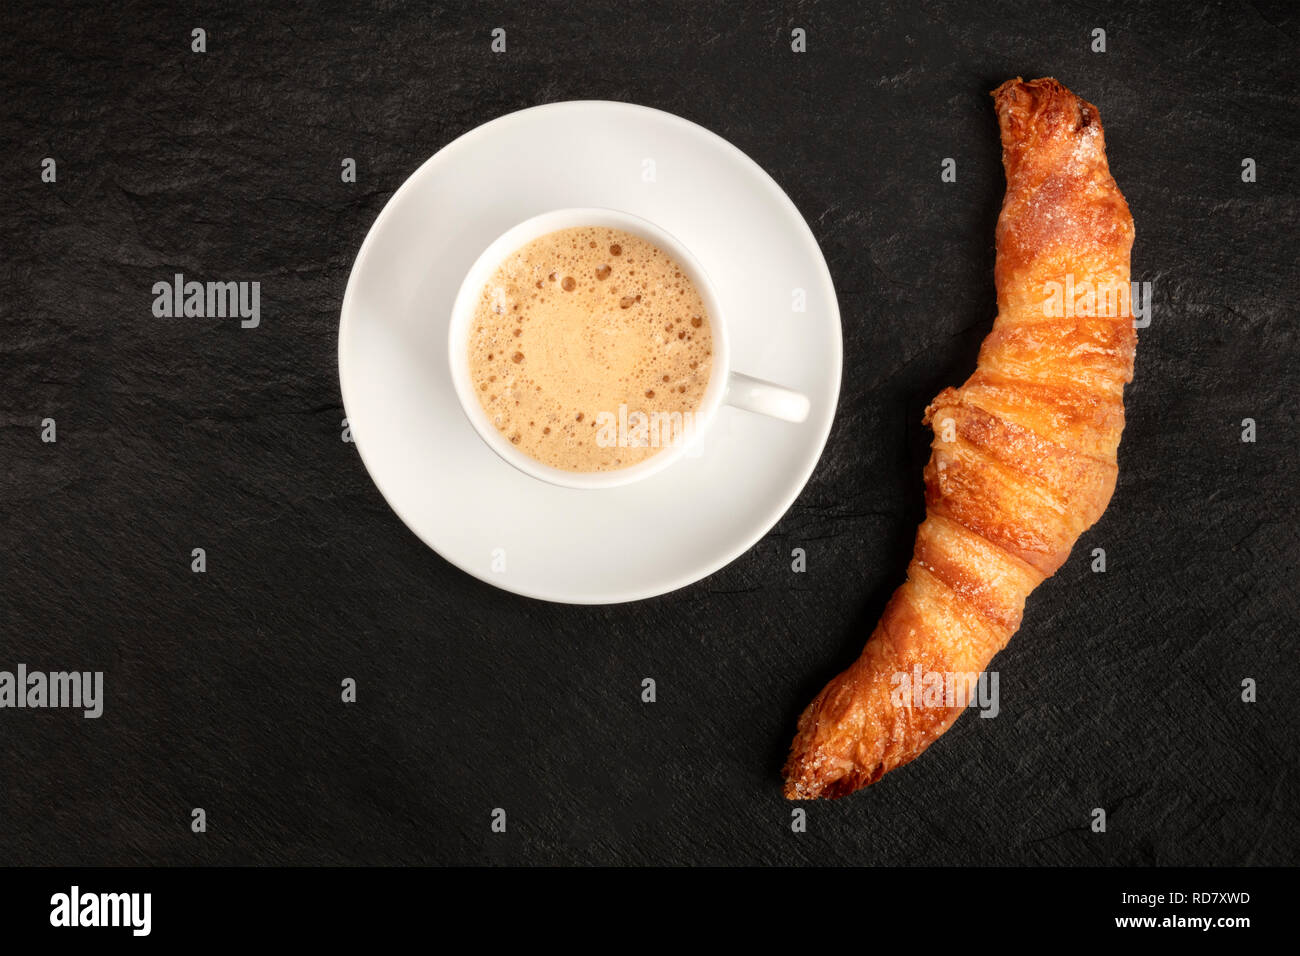 A photo of a croissant with a cup of coffee, shot from above on a black background with copy space - Stock Image